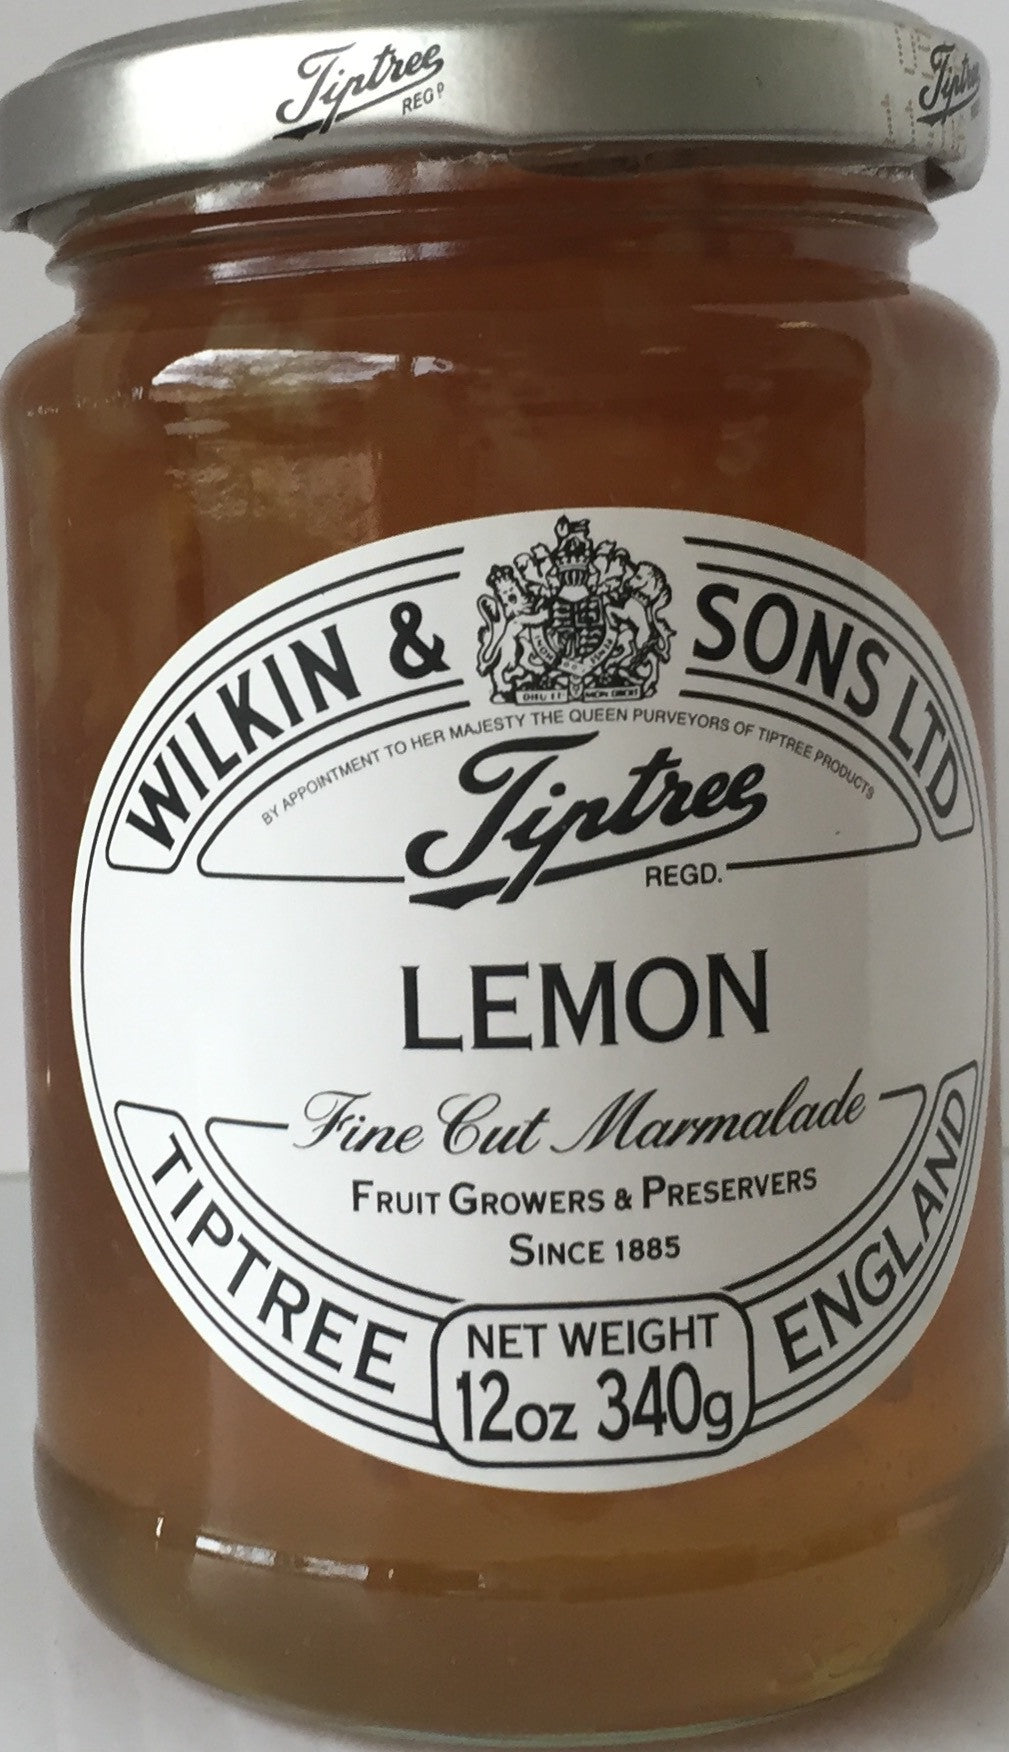 Tiptree Lemon Marmalade 12oz